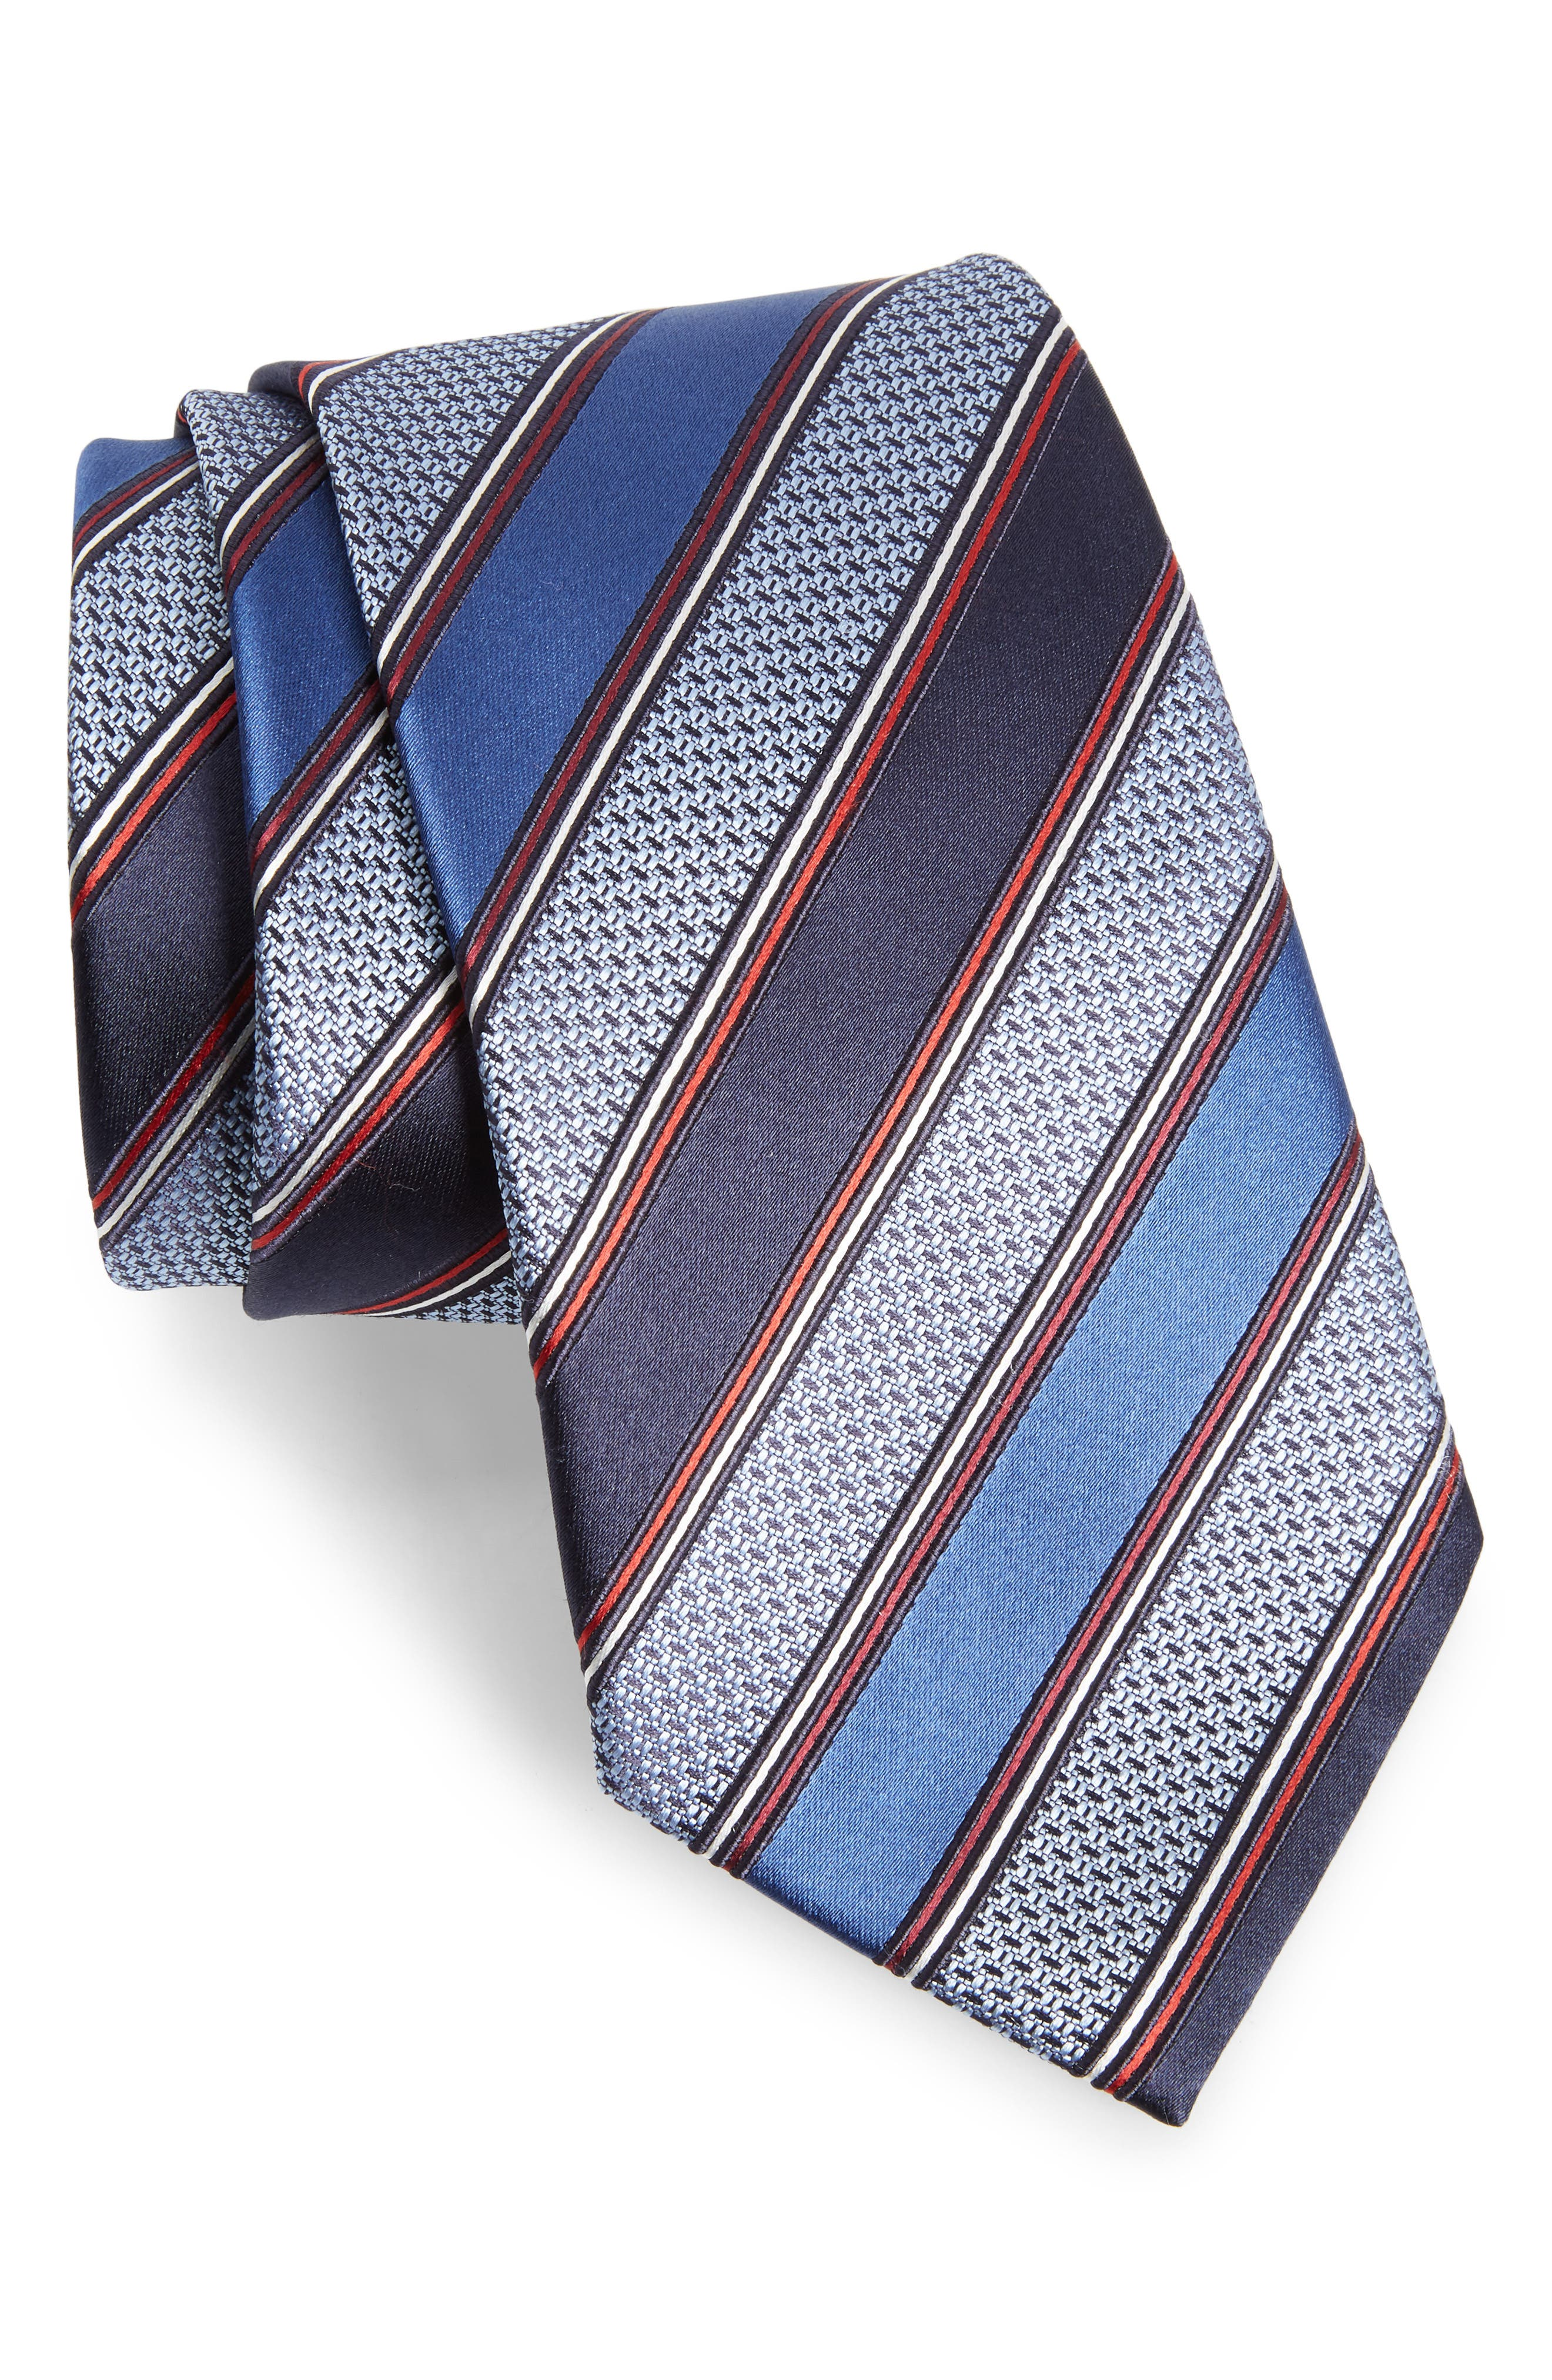 Stripe Silk & Cotton Tie,                             Main thumbnail 1, color,                             414